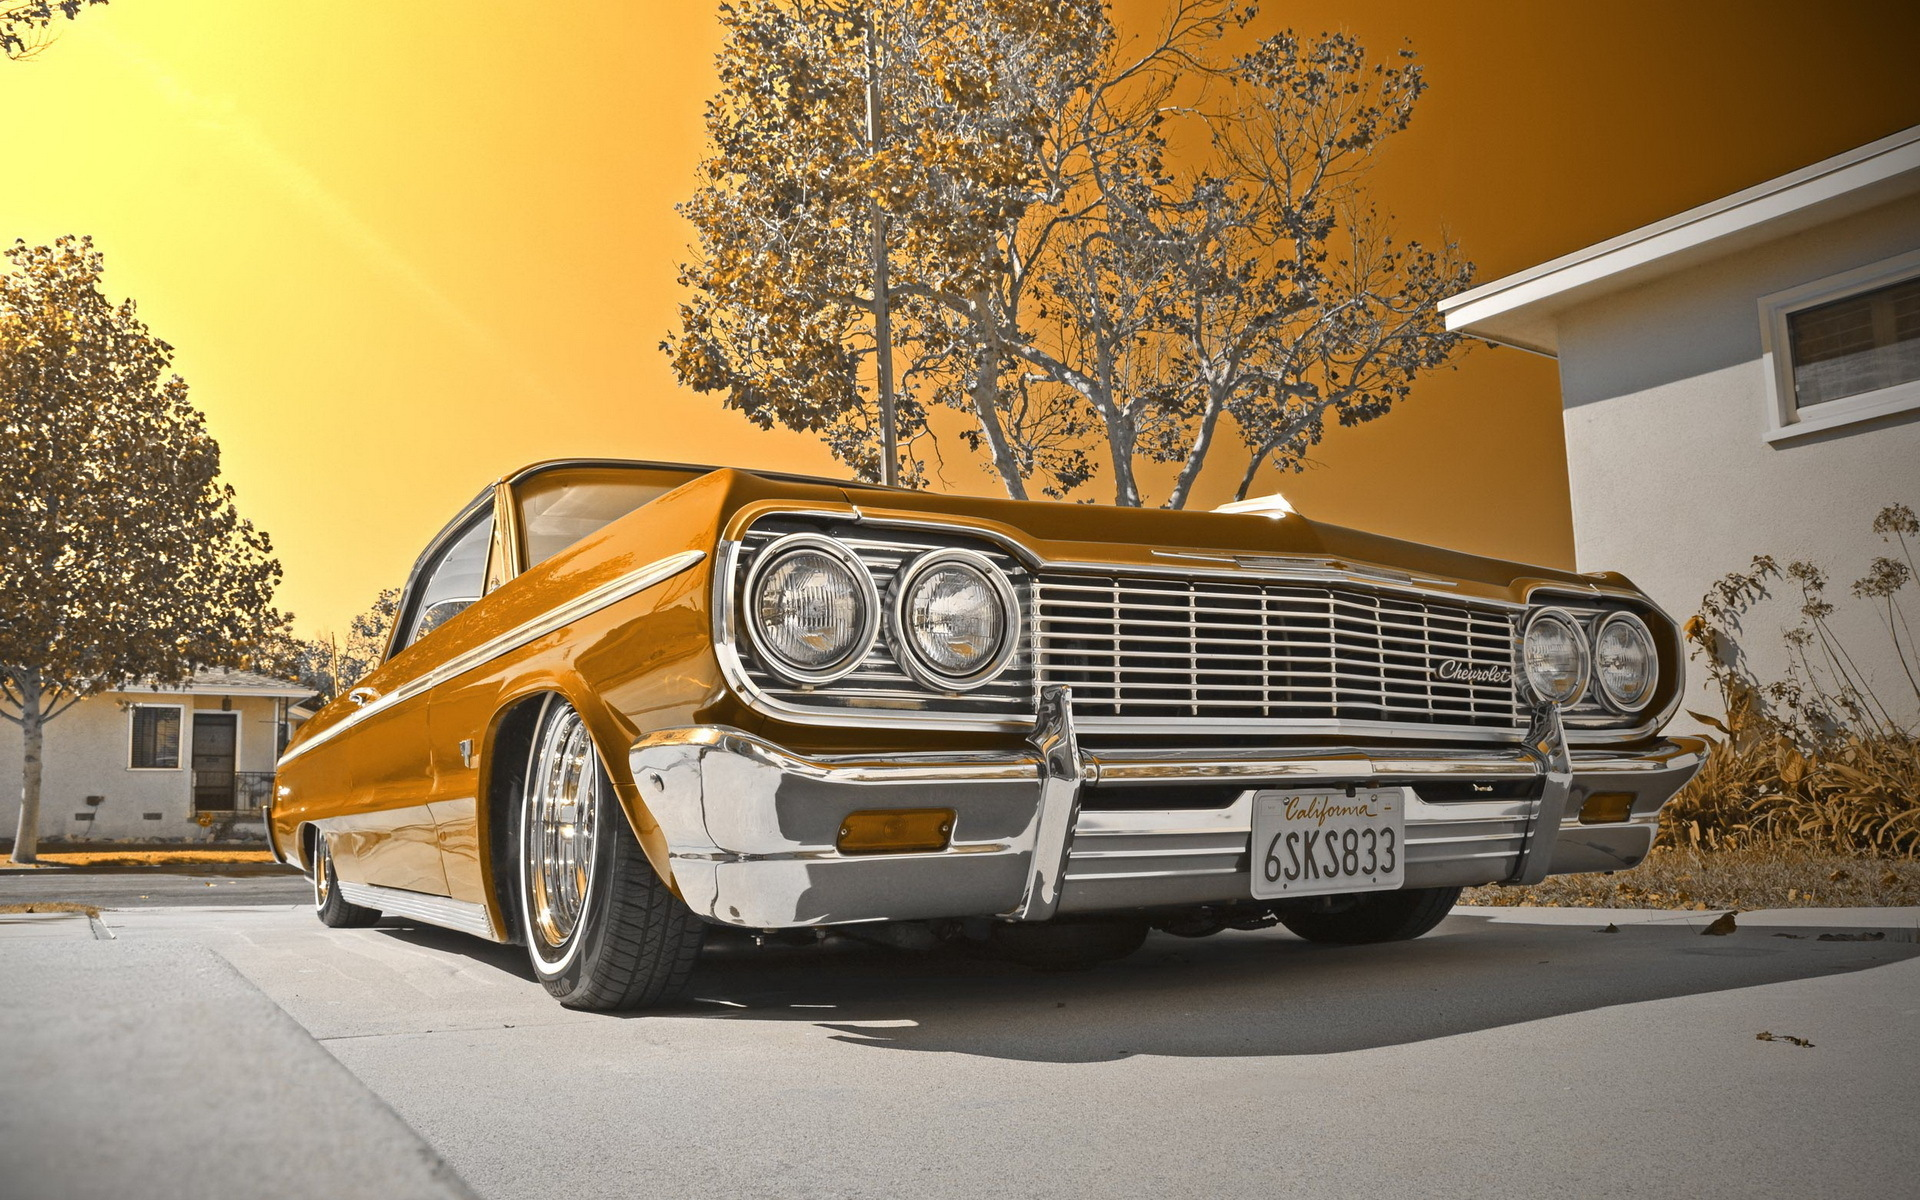 1964 Chevy impala lowrider muscle cars tuning wallpaper ...